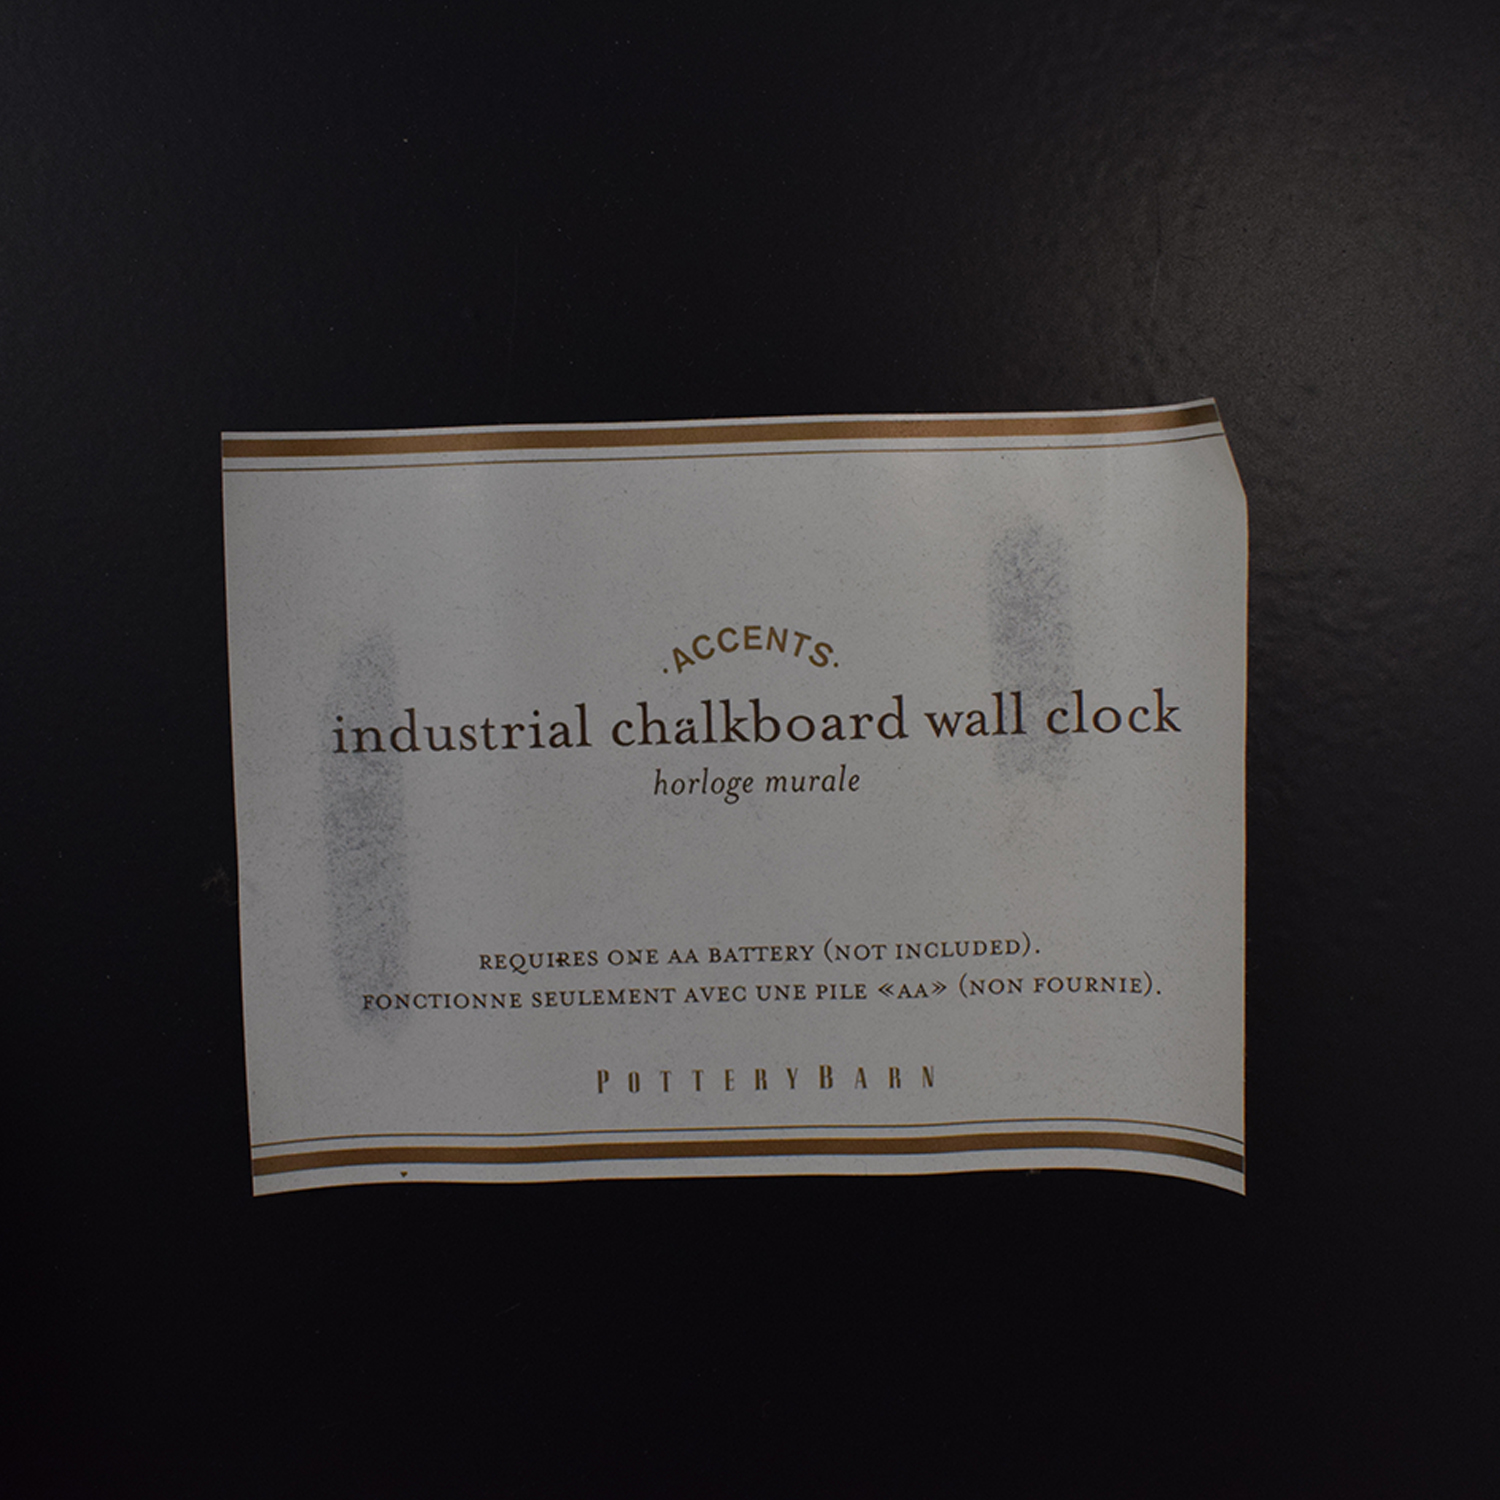 Pottery Barn Oversized Industrial Chalkboard Wall Clock second hand